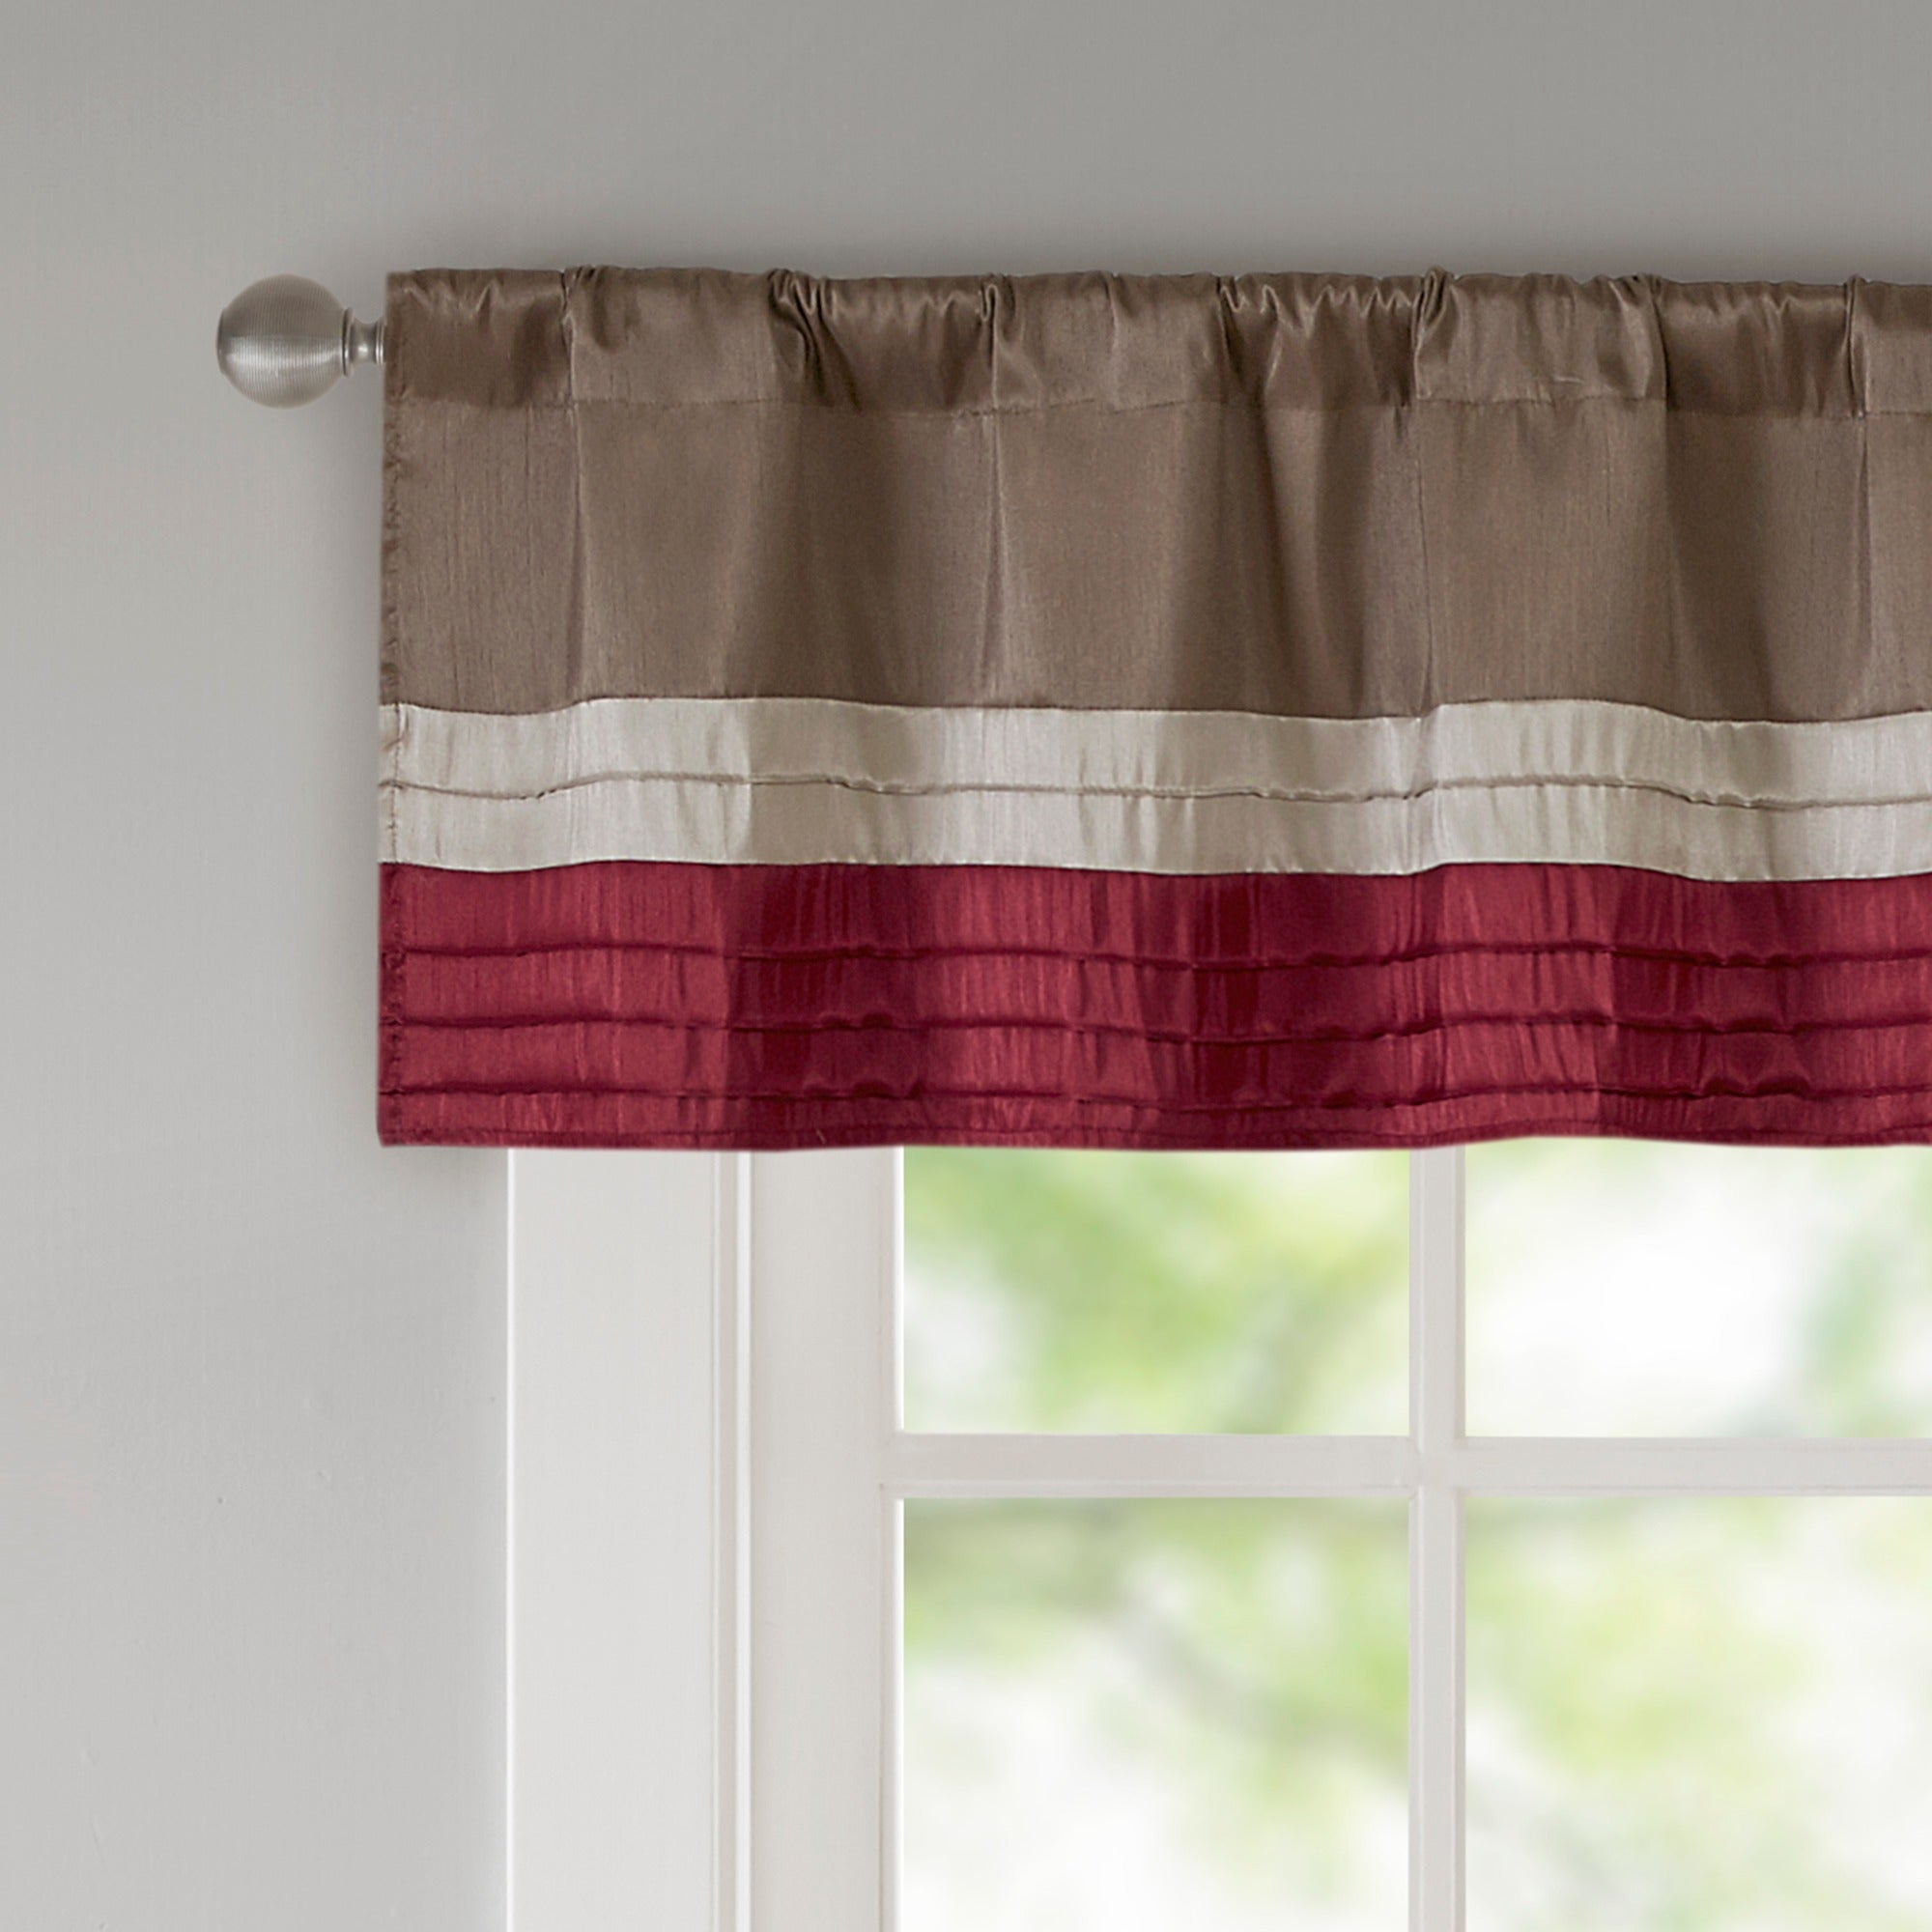 full stunning of rust and noticeabl dramatic curtains window skirts traditional kitchen lined valances valance ideas glorious treatment tivoli wondrous inch brown made colored size small ready bedroom cool for windows bathroom delight bed